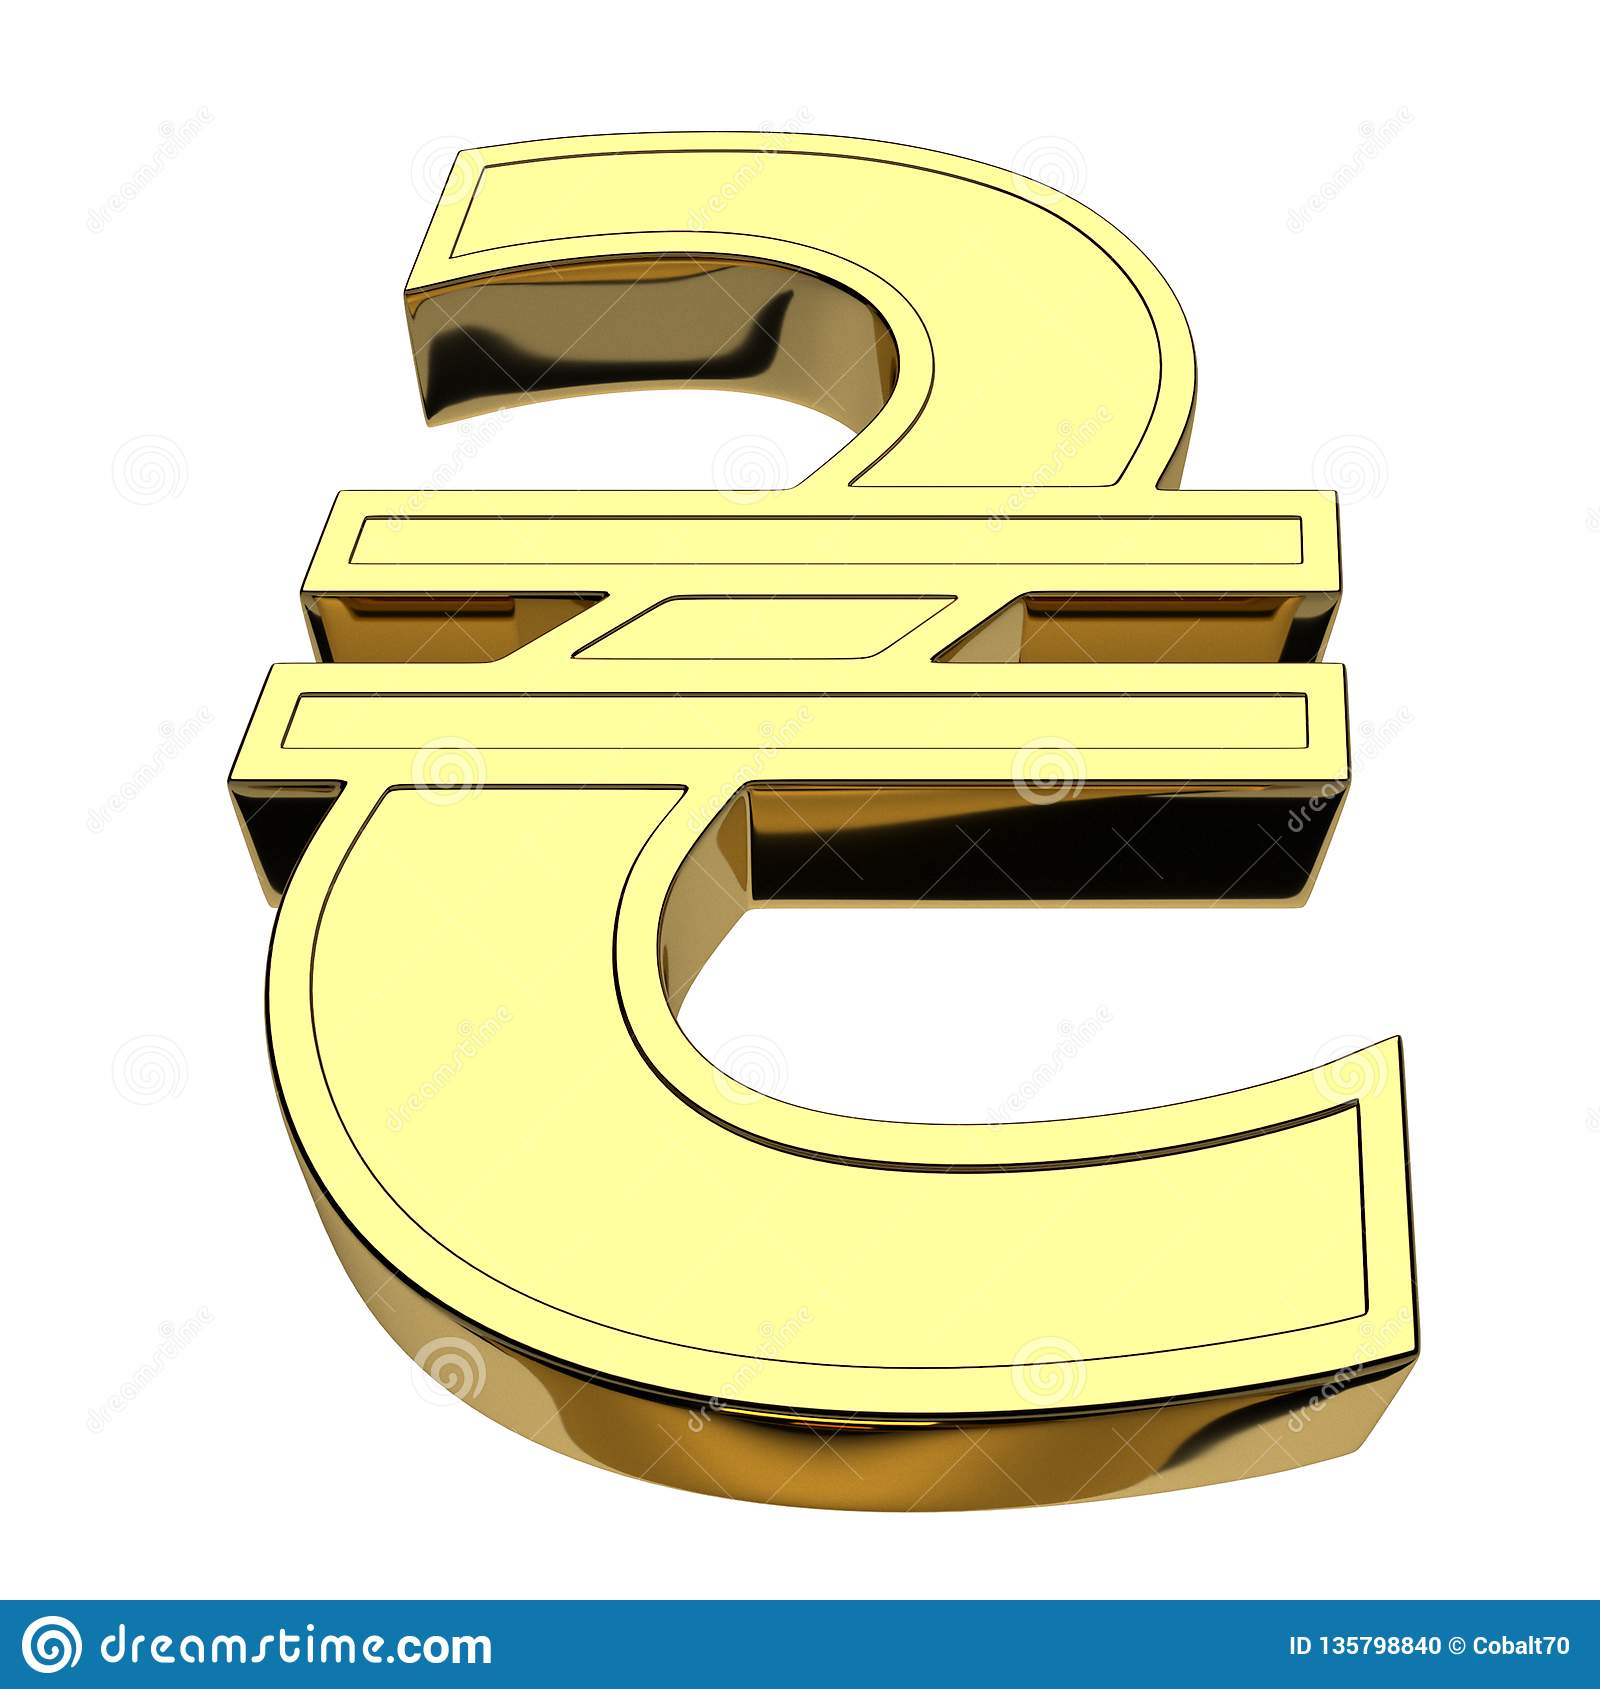 3D rendering currency symbol of Ukrainian hryvnia, golden, isolated on white background